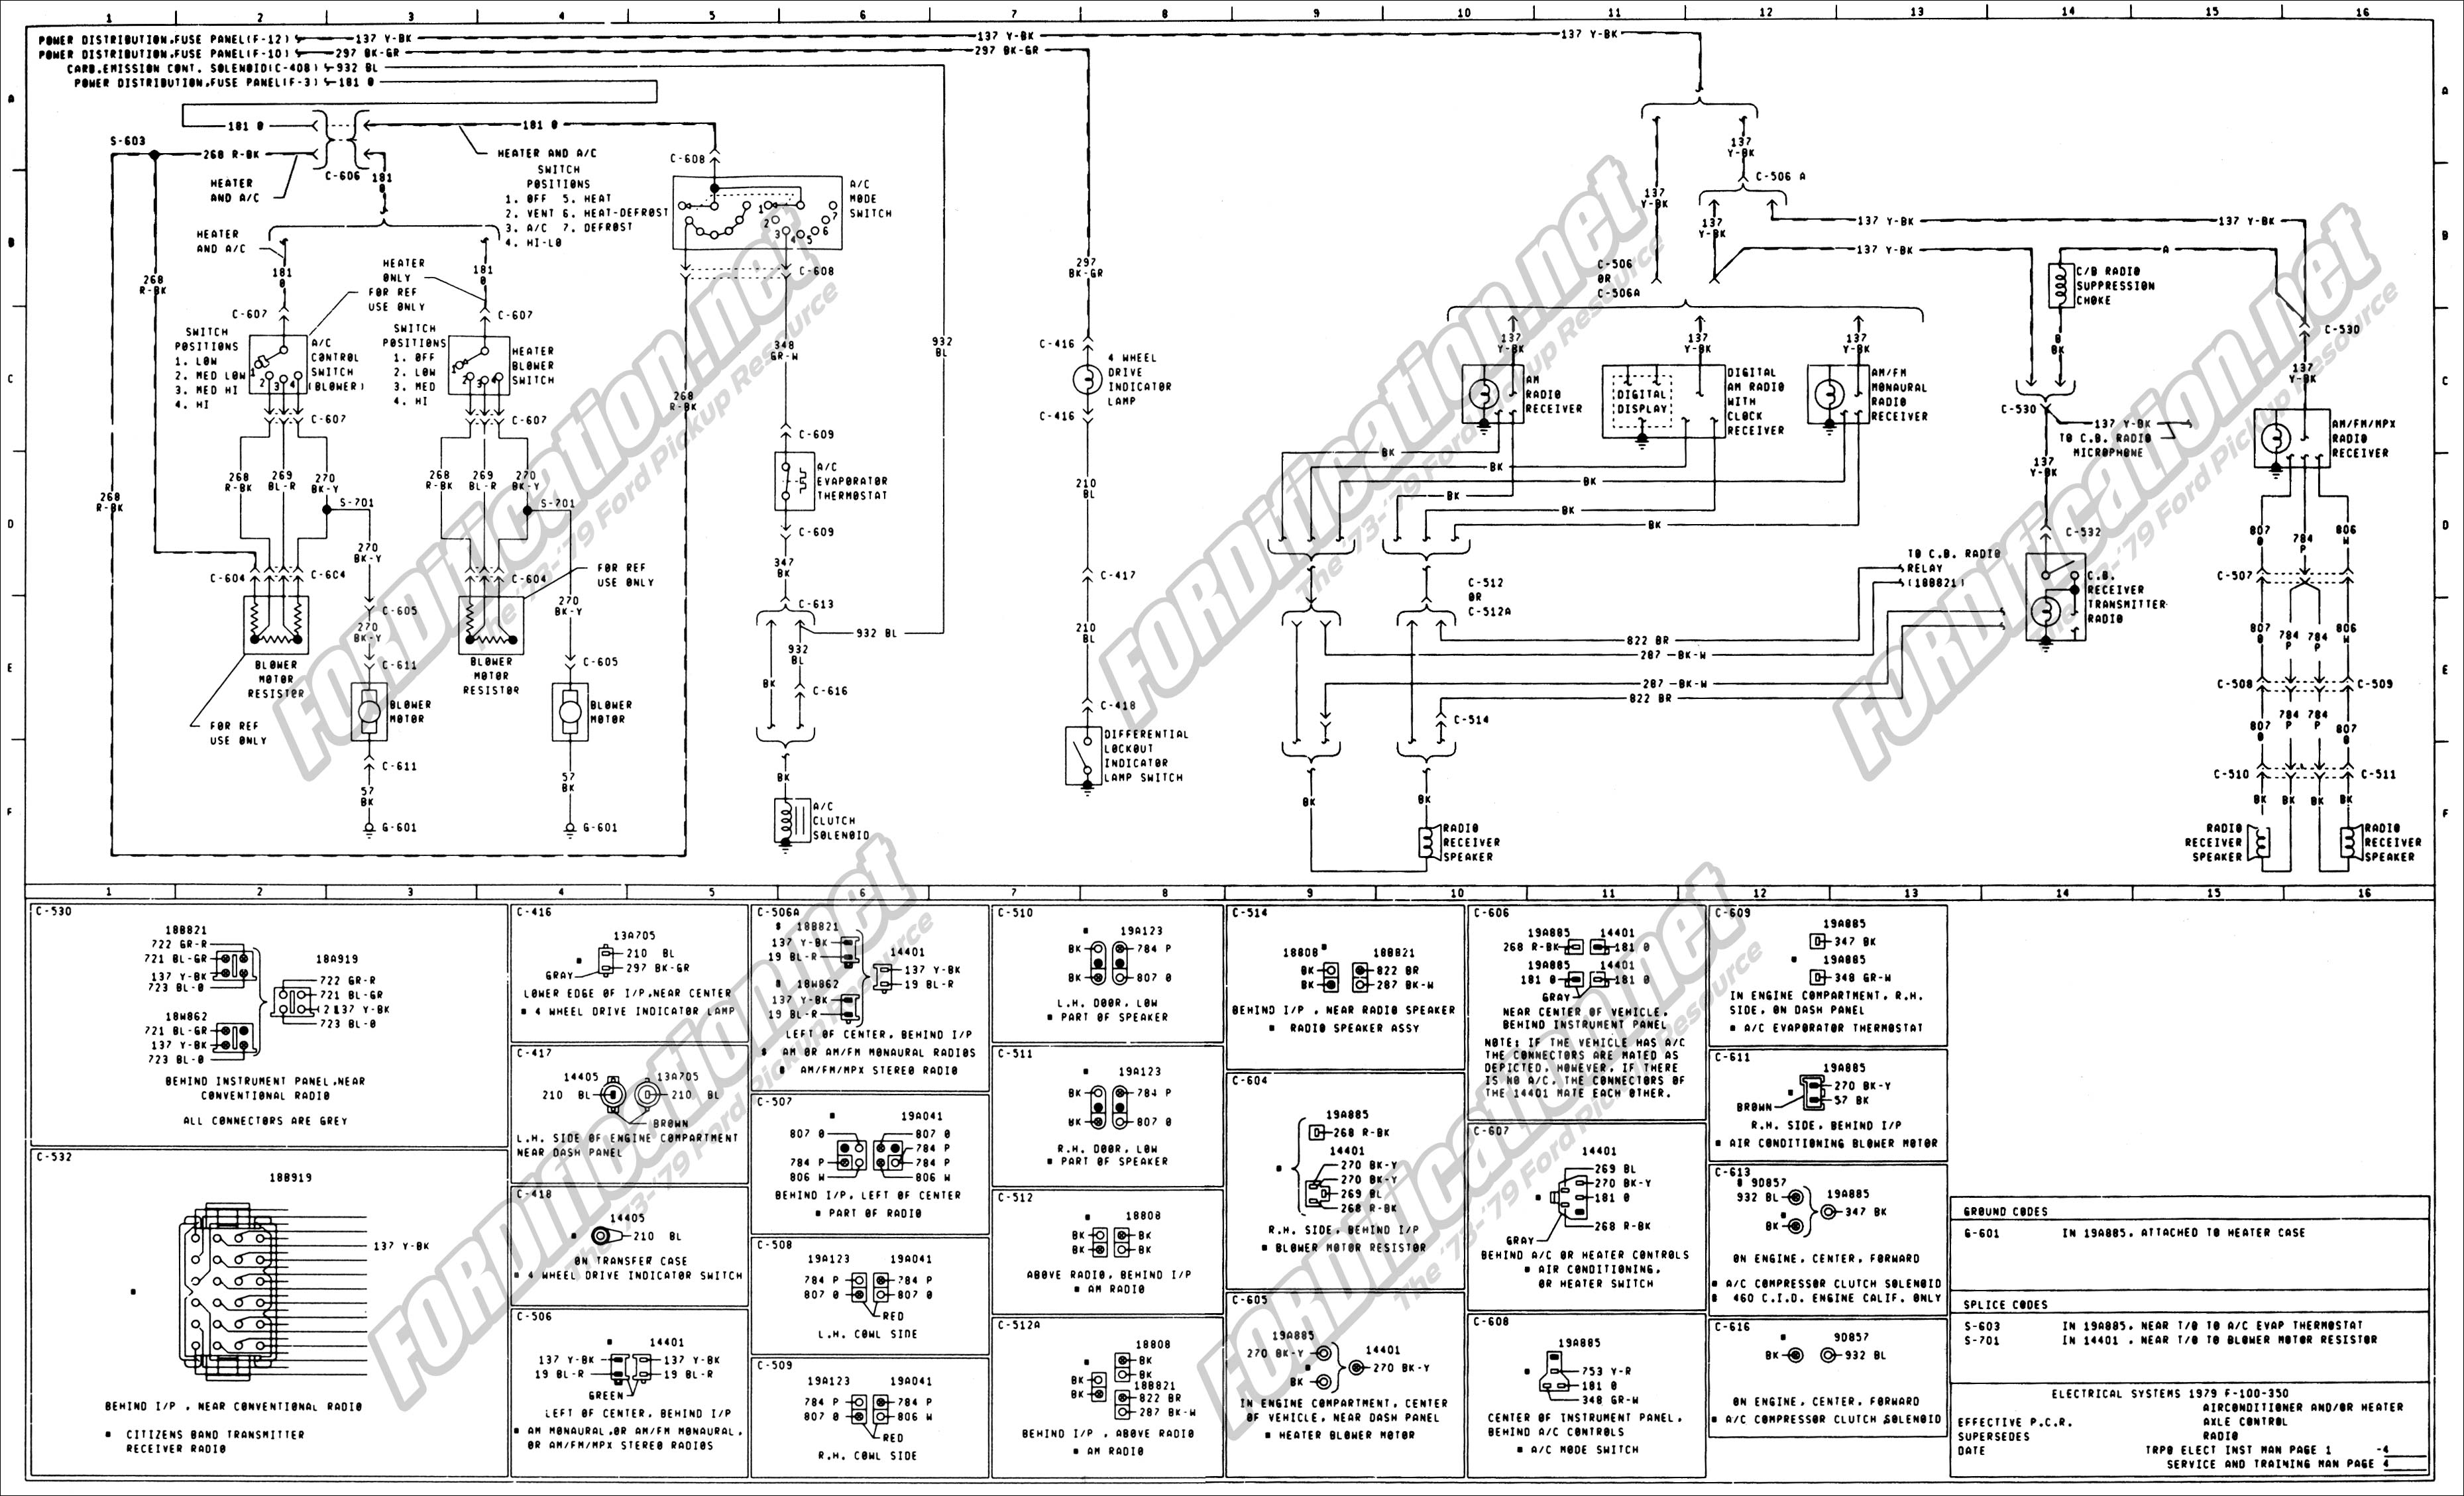 Swell F100 Wiring Diagram For 76 Wiring Library Wiring Digital Resources Indicompassionincorg